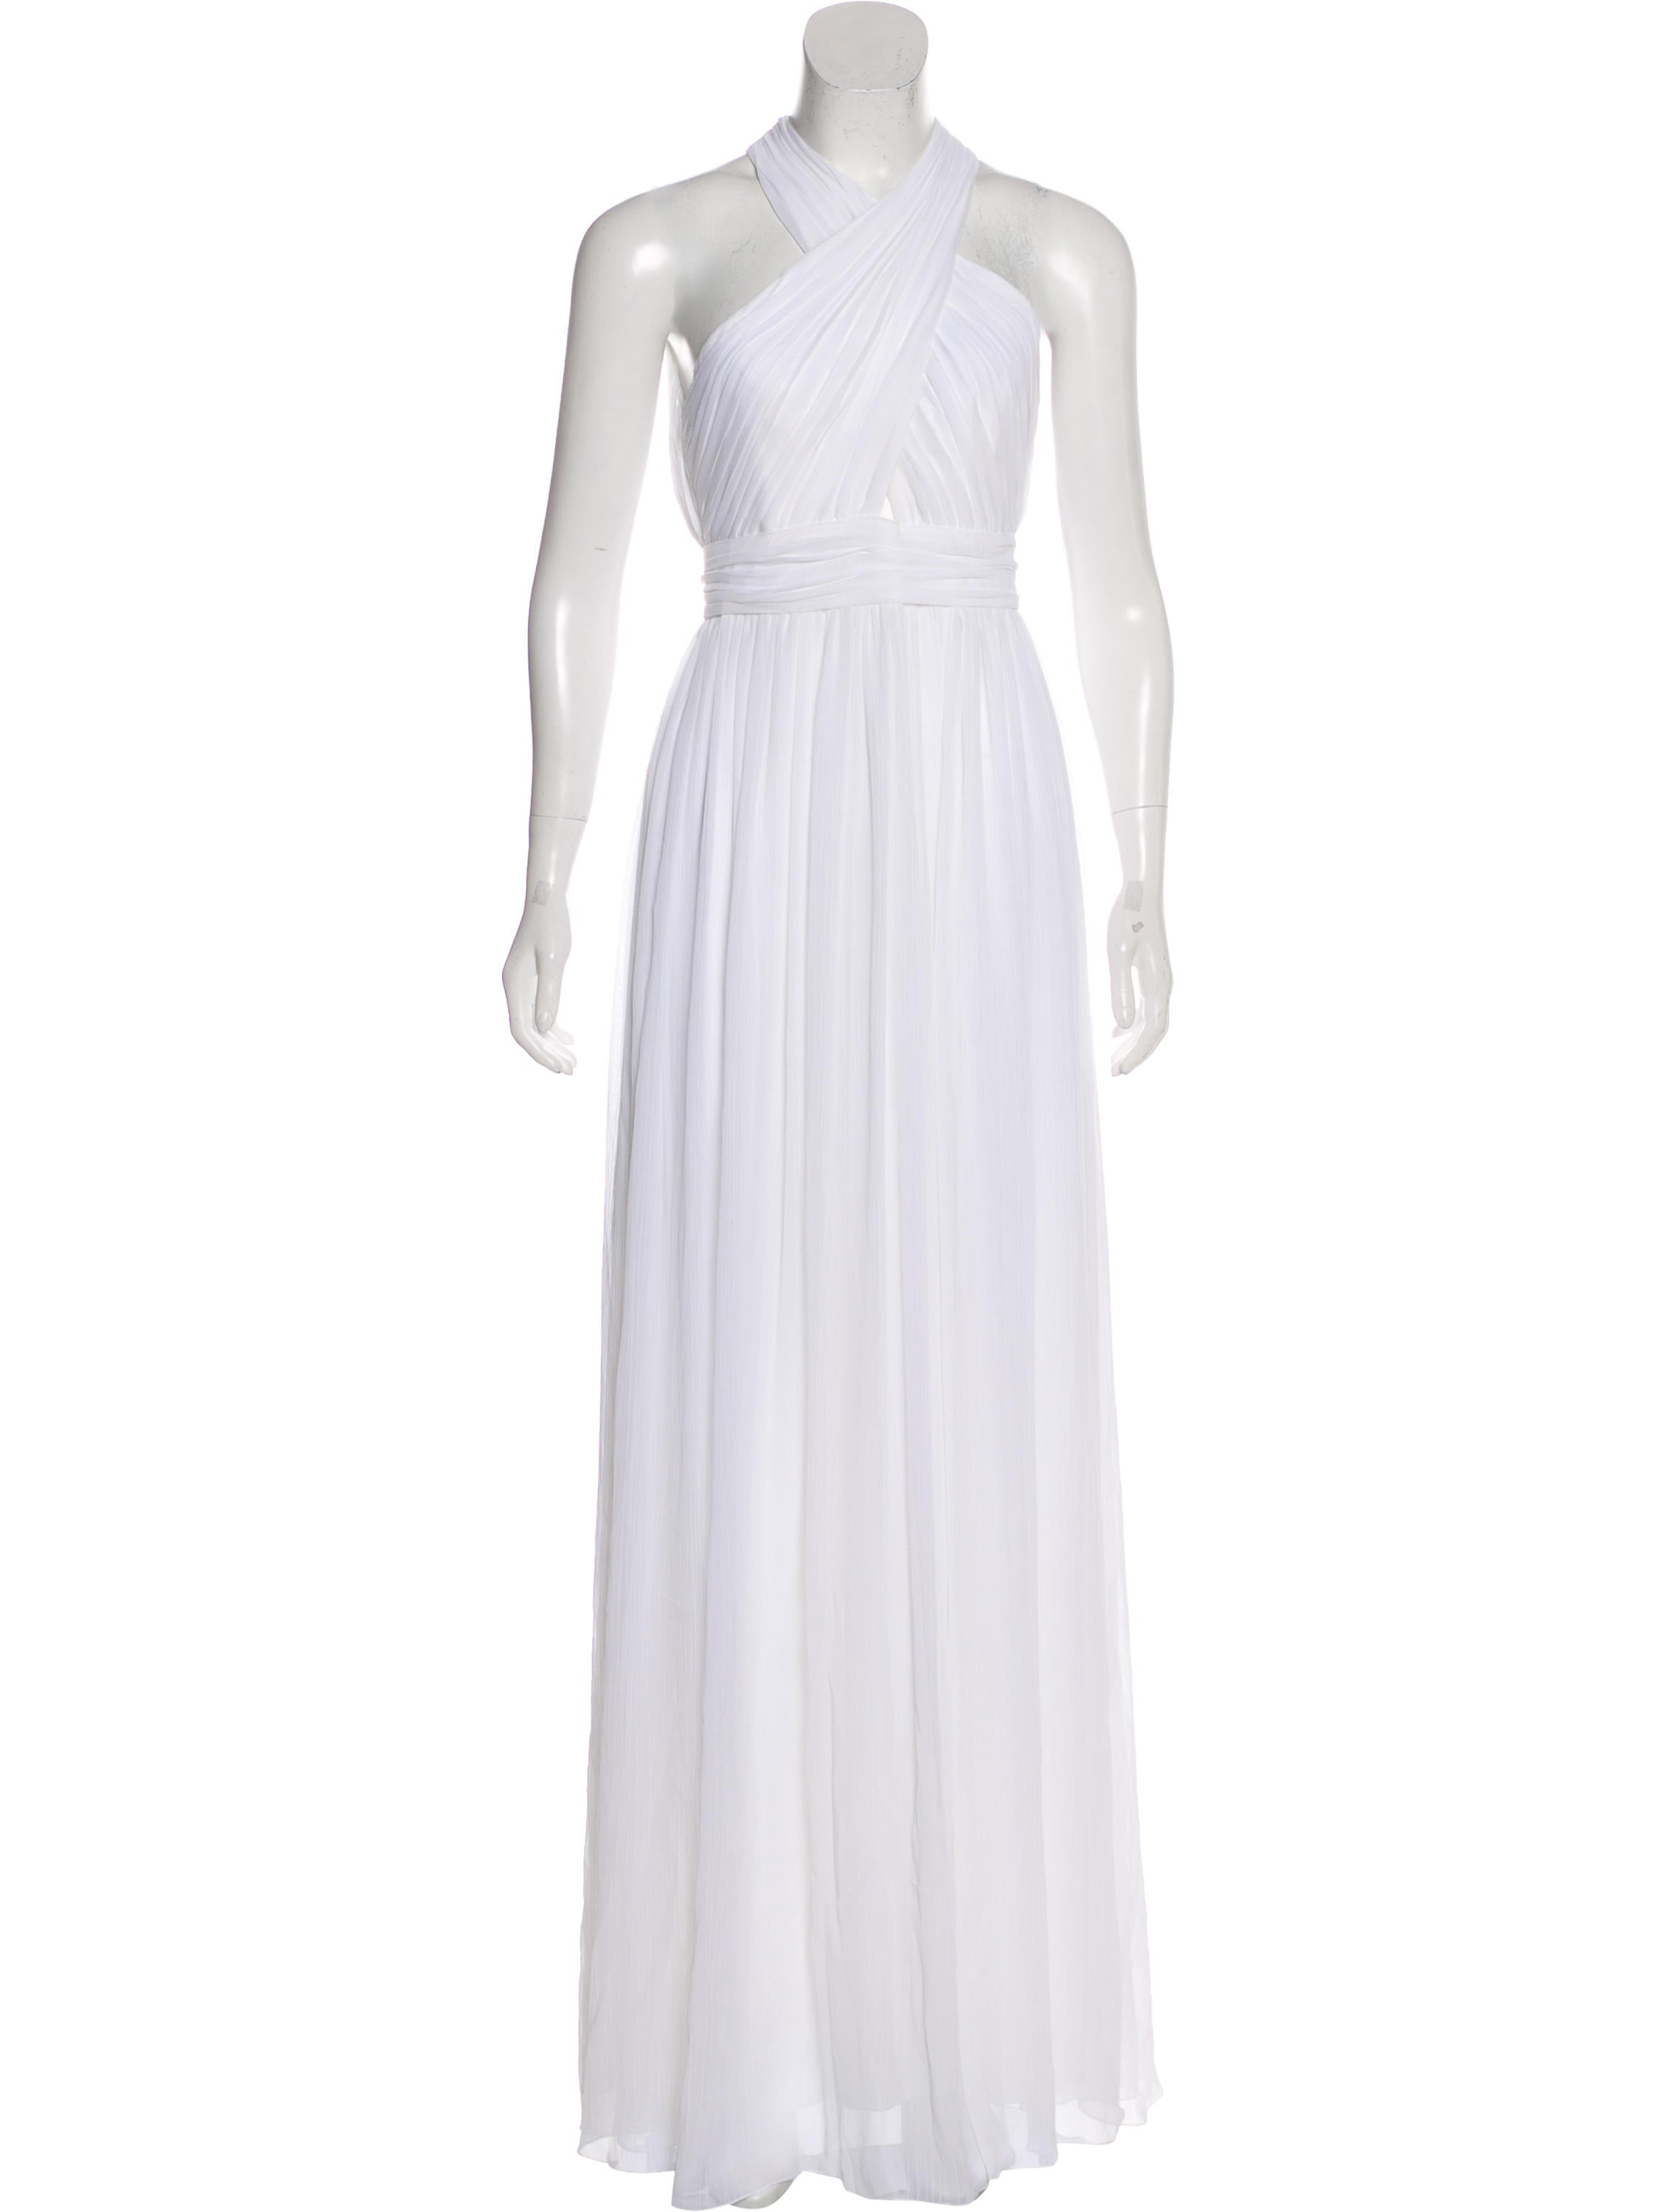 Alice + Olivia Ruched Evening Gown - Clothing - WAO78228 | The RealReal